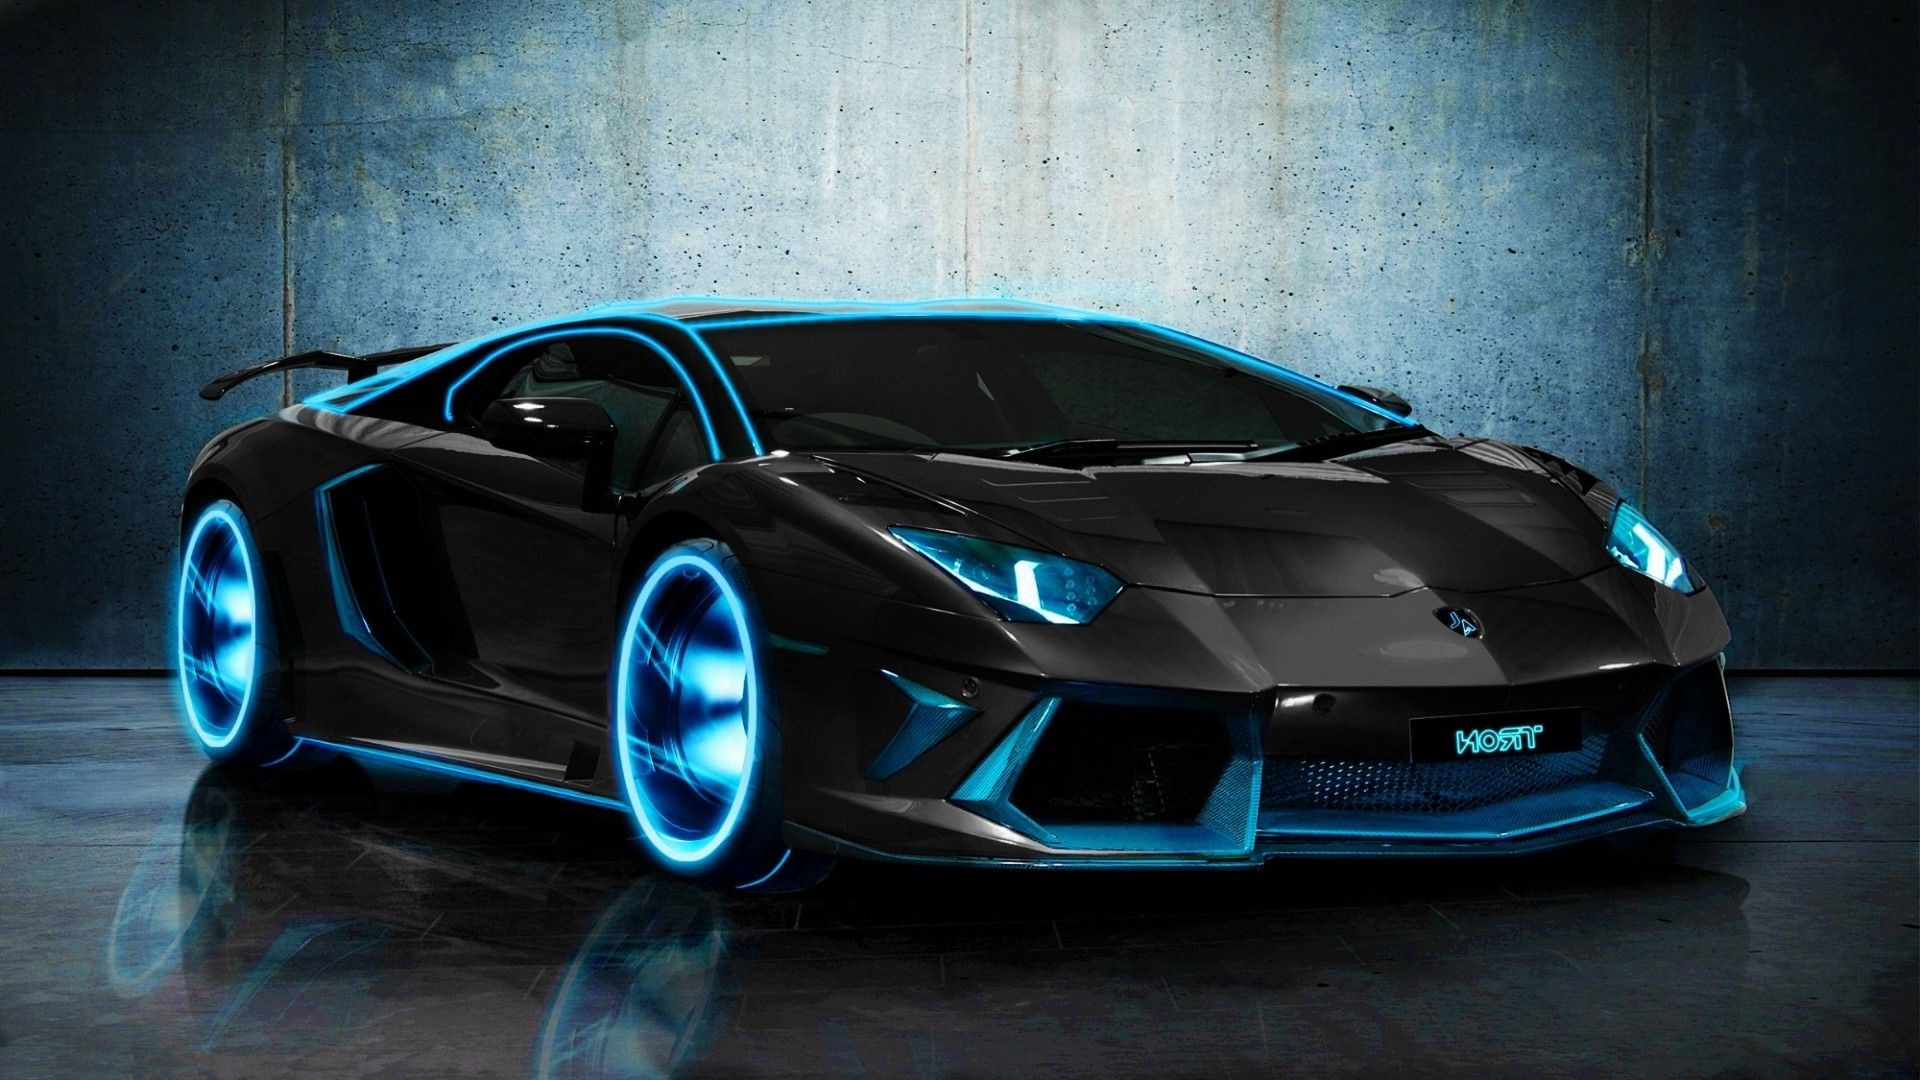 Cool Lamborghini Wallpapers Top Free Cool Lamborghini Backgrounds Wallpaperaccess